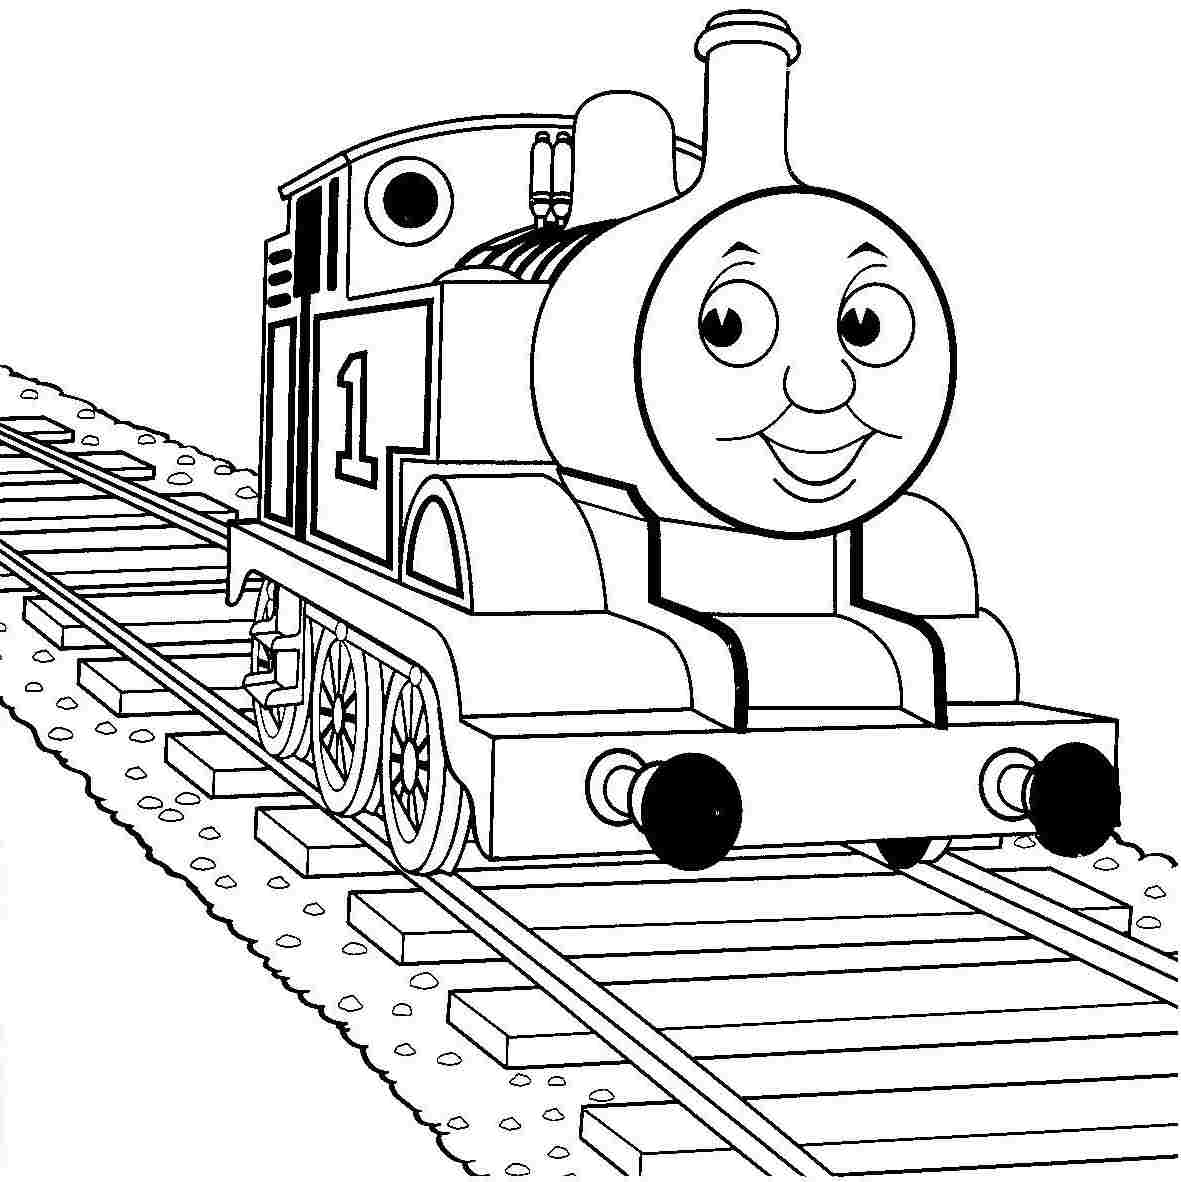 coloring pictures thomas-the-train,printable,coloring pages